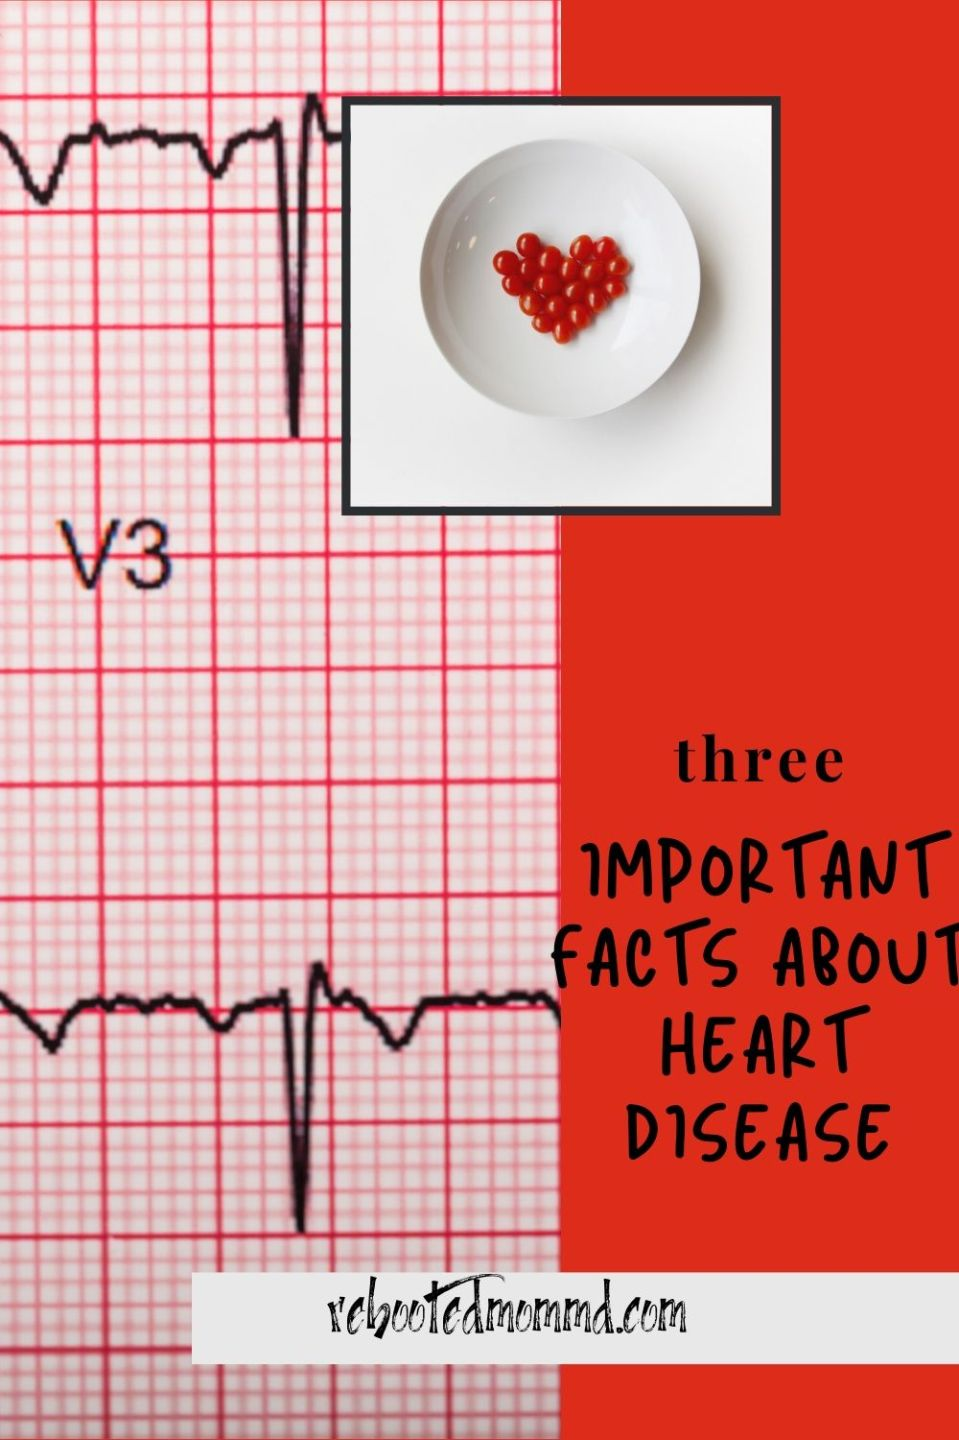 3 Facts About Heart Disease